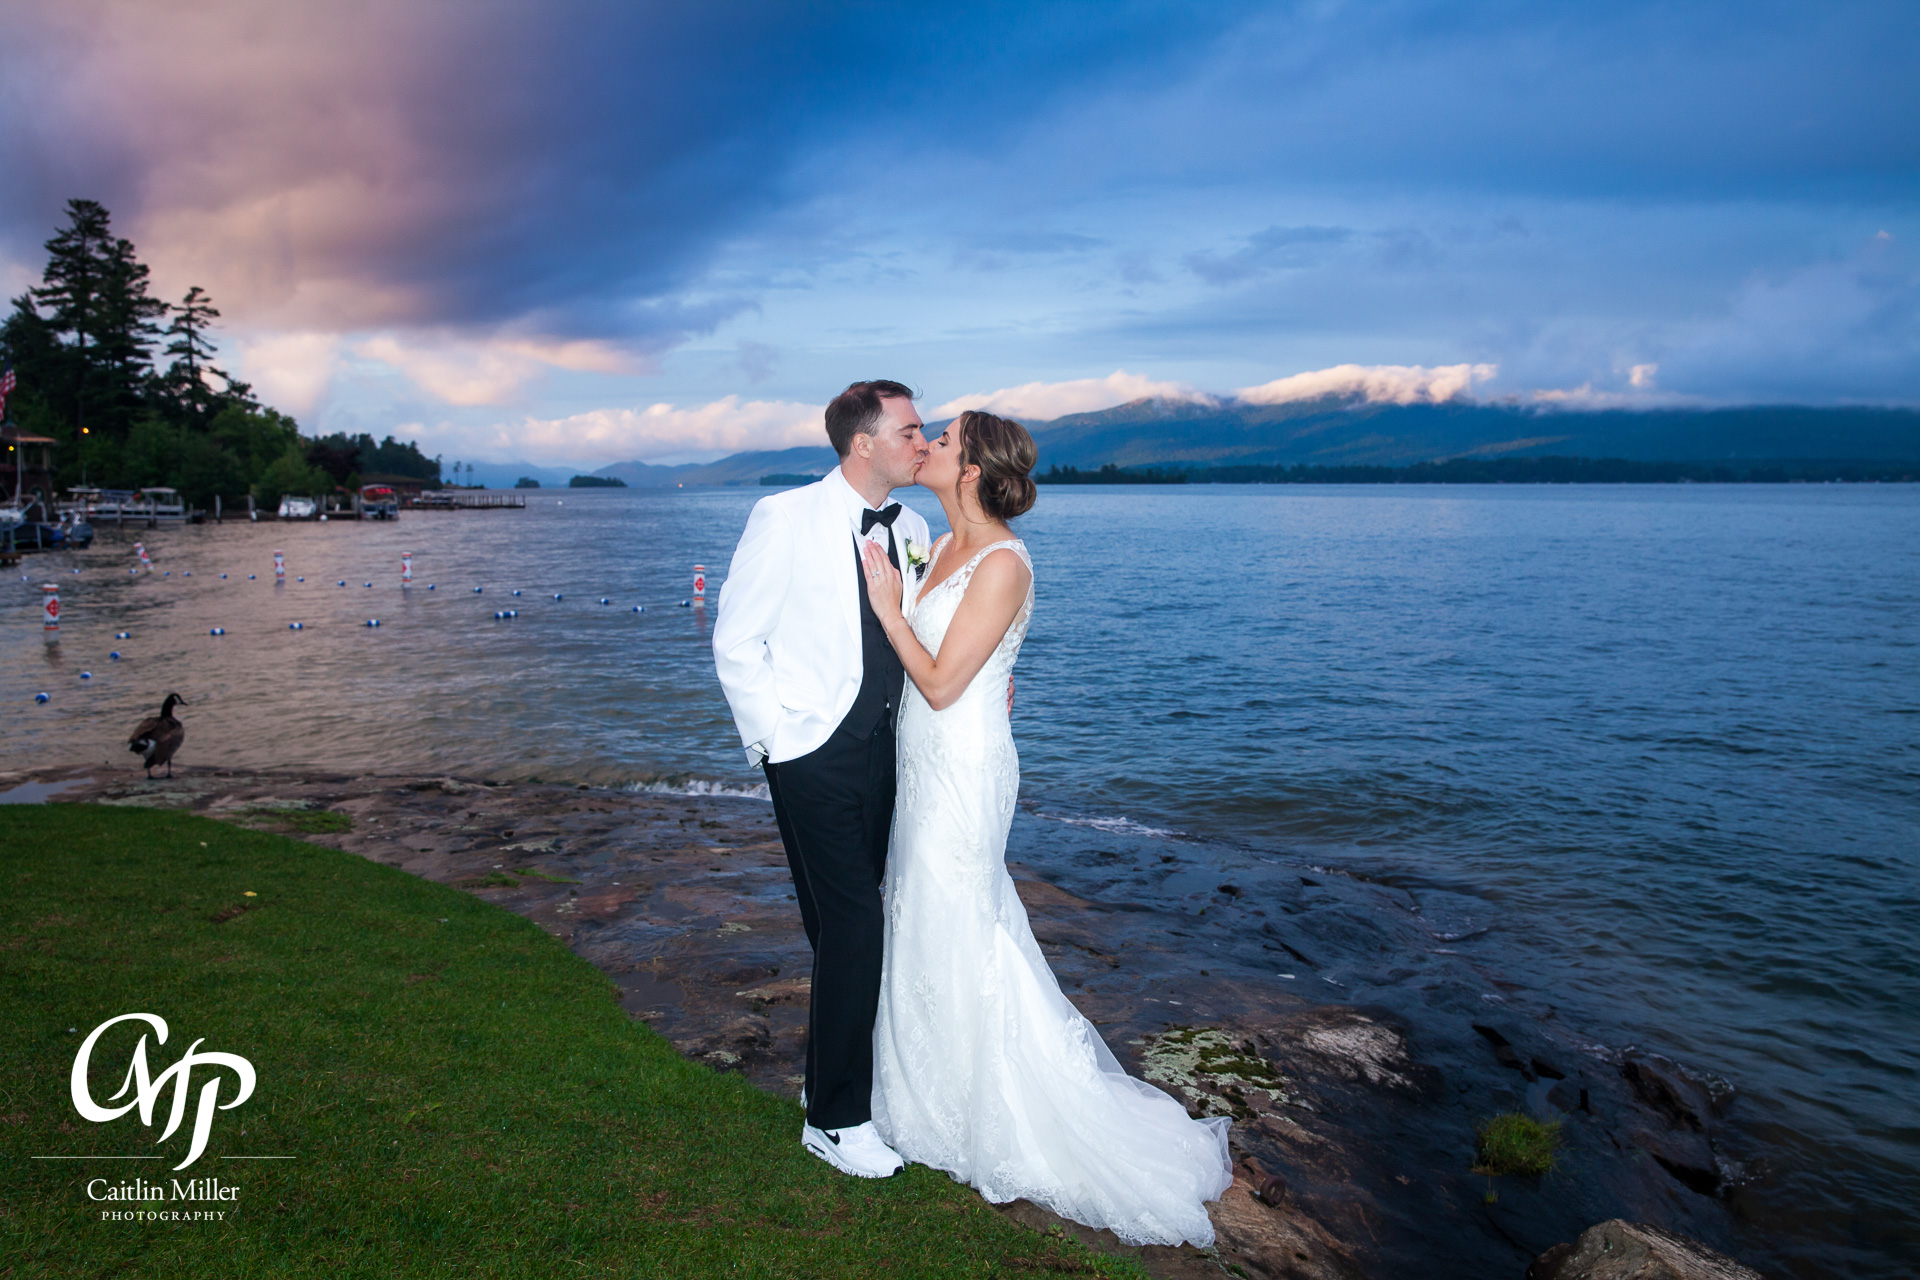 salecover.jpg from Kendall and Chris's Lake George wedding at the Inn at Erlowest by Saratoga Wedding Photographer Caitlin Miller Photography. Lake George Wedding Photographer. Adirondack wedding photographer. Albany wedding photographer. Lake Placid Wedding Photographer. Saratoga Wedding Photographer